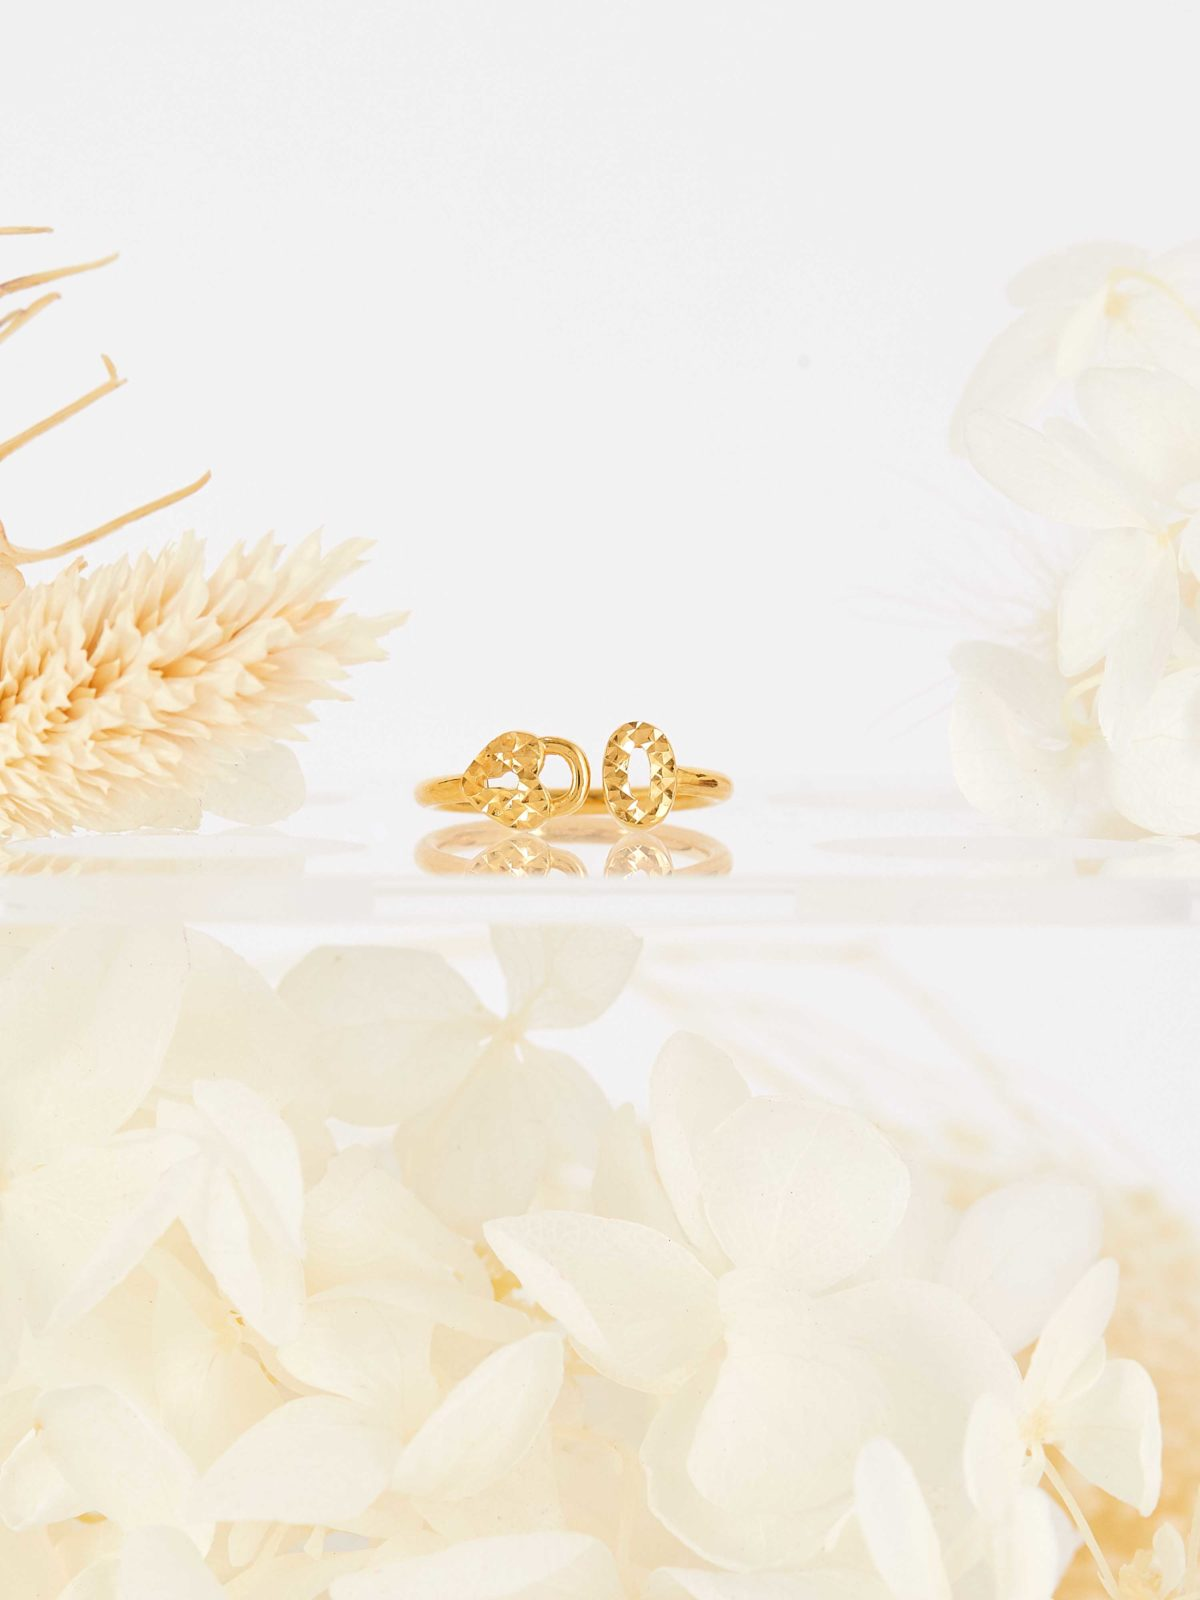 Freelove Gold Ring